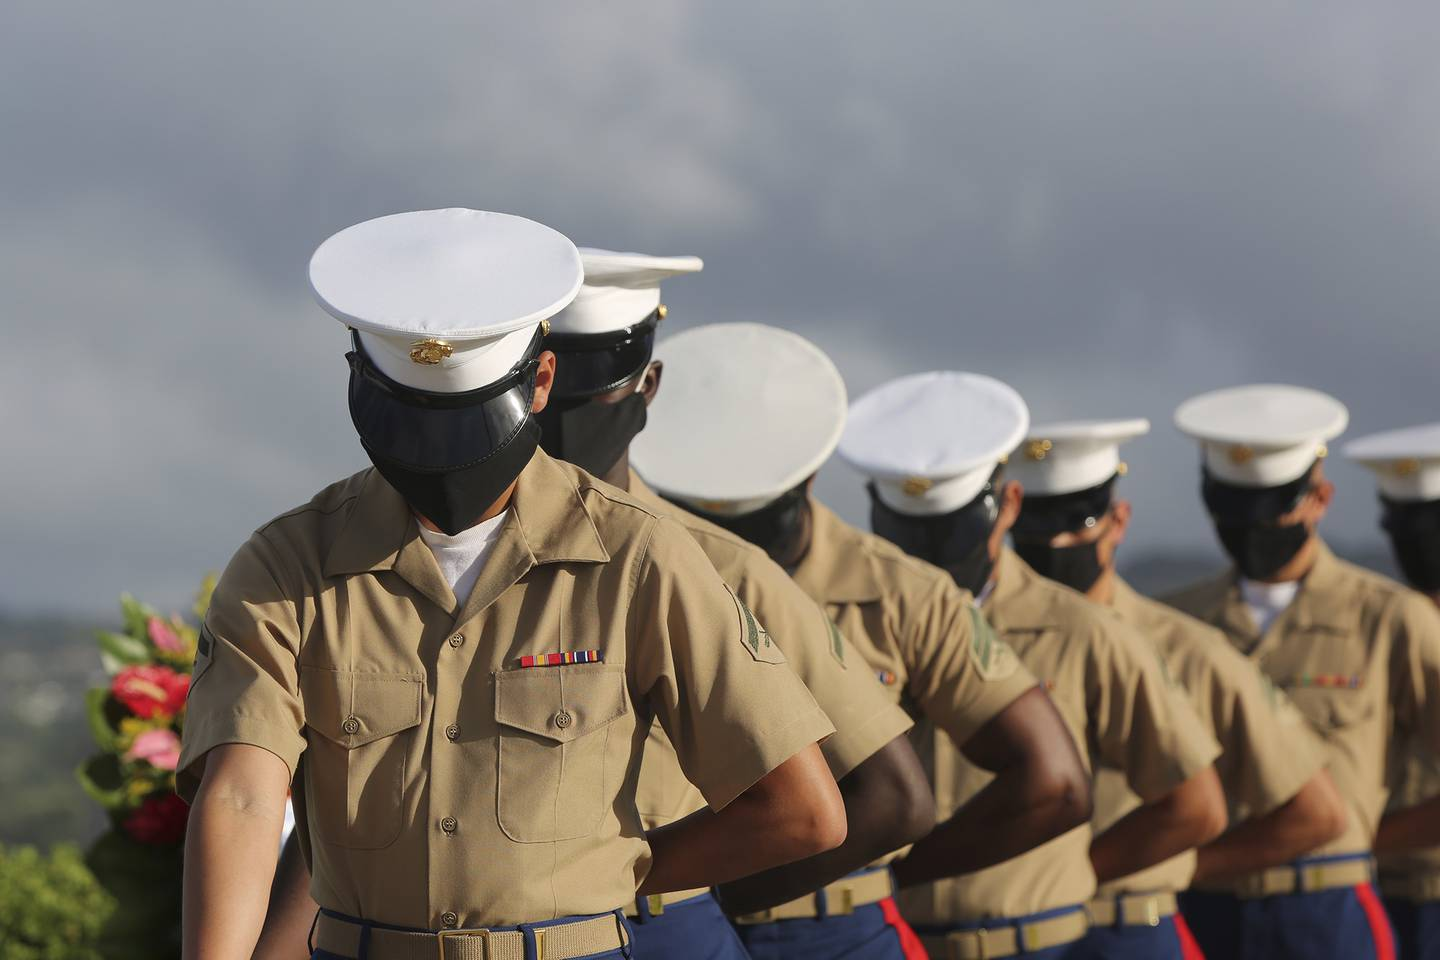 Marines wearing masks pause during a prayer at a ceremony marking the attack on Pearl Harbor, Monday, Dec. 7, 2020, in Pearl Harbor, Hawaii.